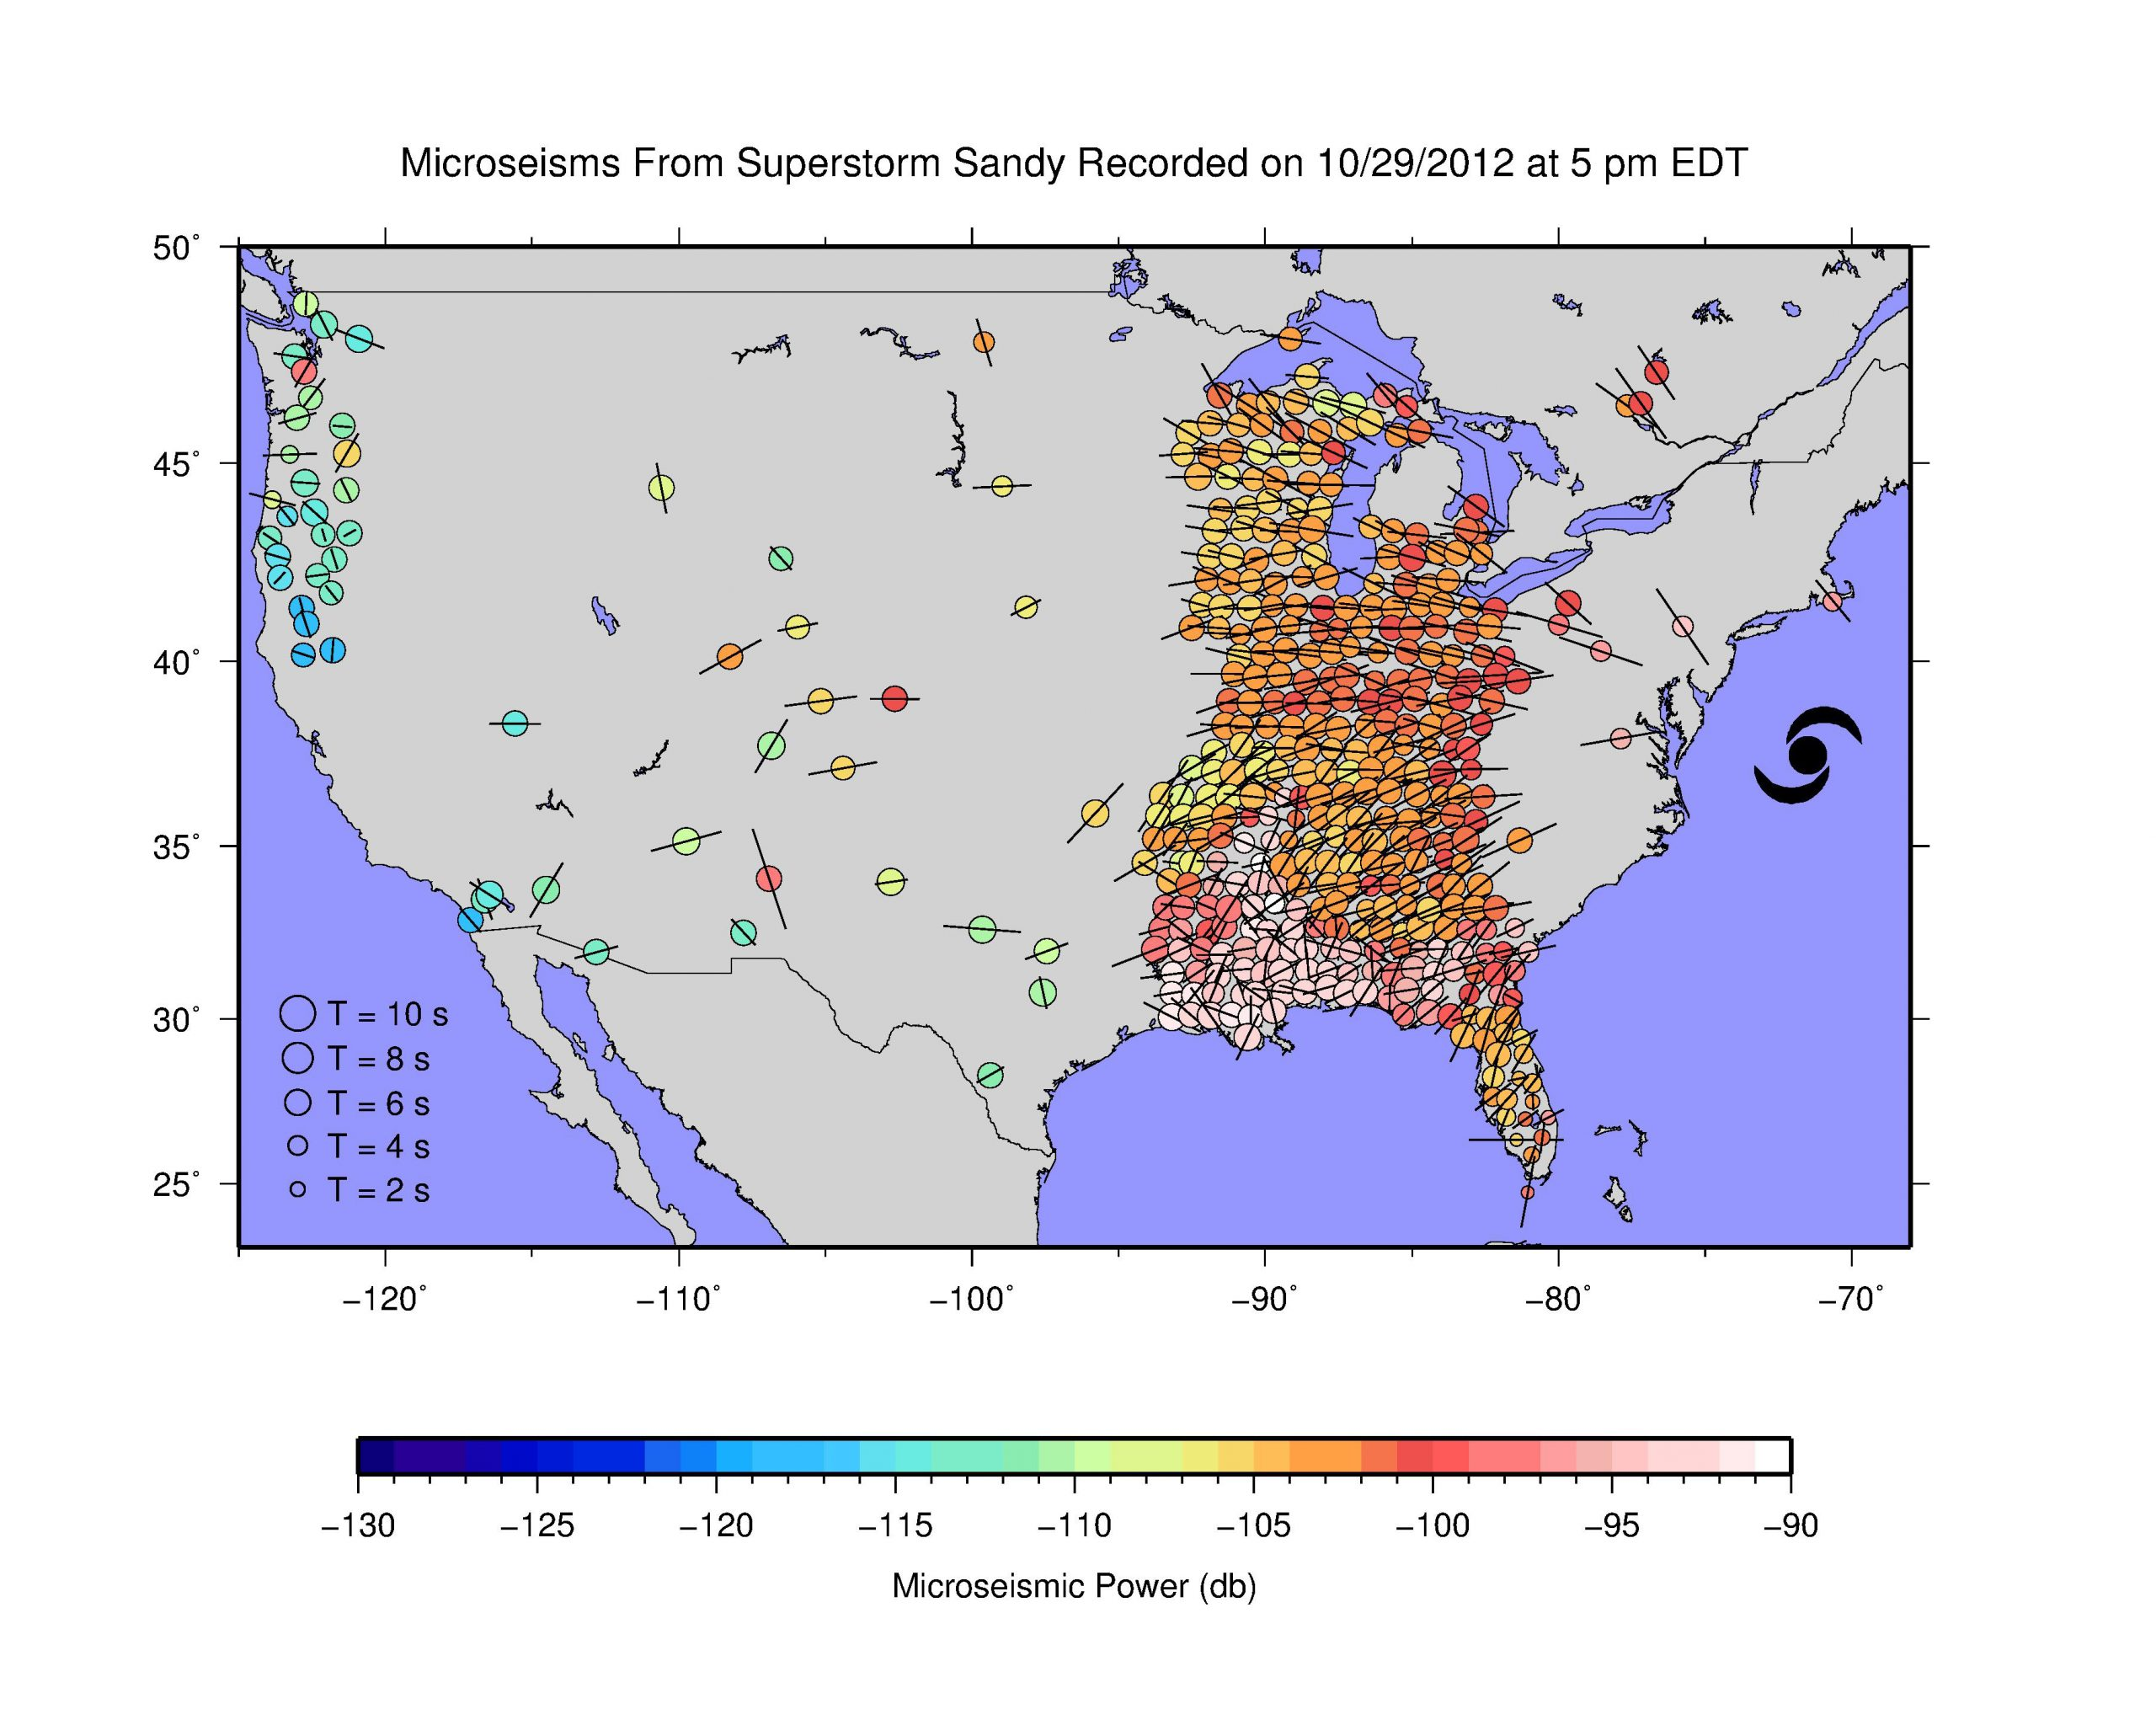 """This map, taken from a University of Utah video, shows colored dots to represent the locations of portable seismometers in the Earthscope array, which is funded by the National Science Foundation. Most are now located in the eastern part of the United States. Blue-green dots indicate low seismic activity, while yellow-orange-red dots indicate stronger seismic activity. The map shows that when superstorm Sandy turned west-northwest toward Long Island, New York City and New Jersey on Oct. 29, 2012, the seismometers """"lit up"""" because of ground shaking by certain ocean waves imparting energy to the seafloor."""